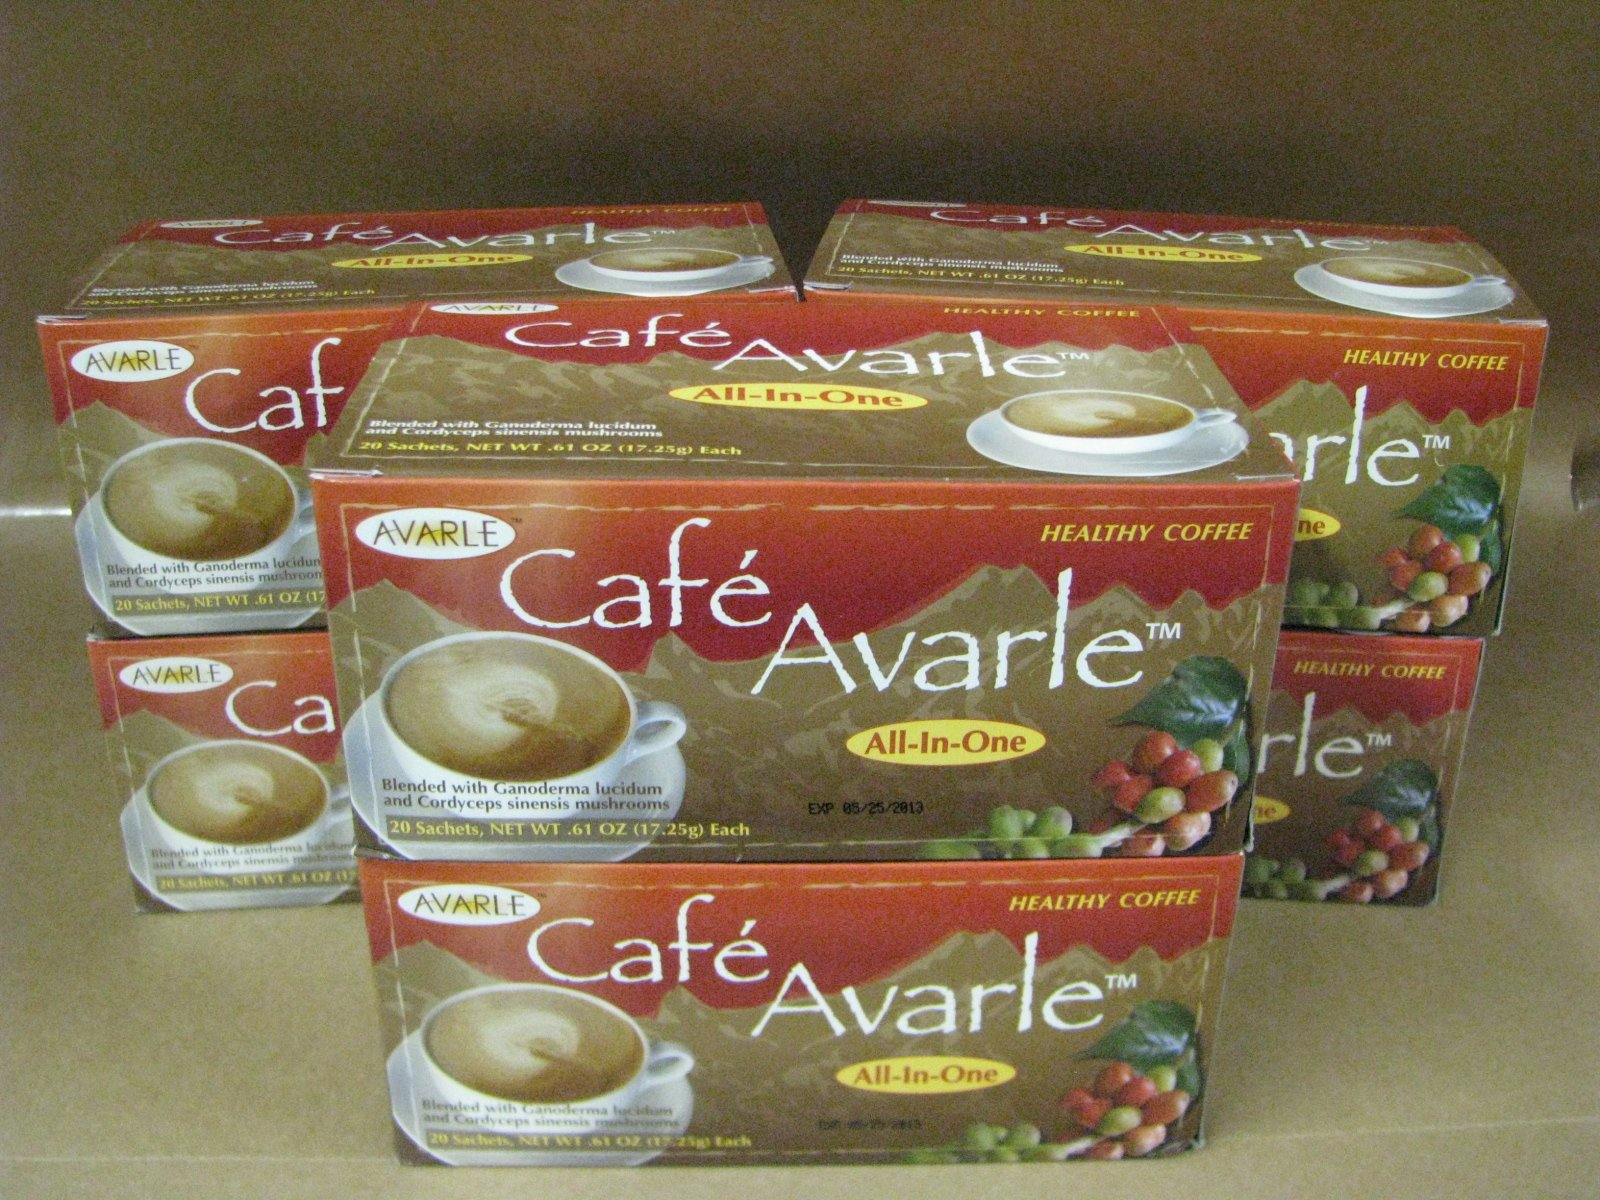 All-in-One Healthy Coffee with Ganoderma & Cordceps. Creamer, Sugar & Xylitol 6 Boxes (20 Pks Ea) by Cafe Avarle